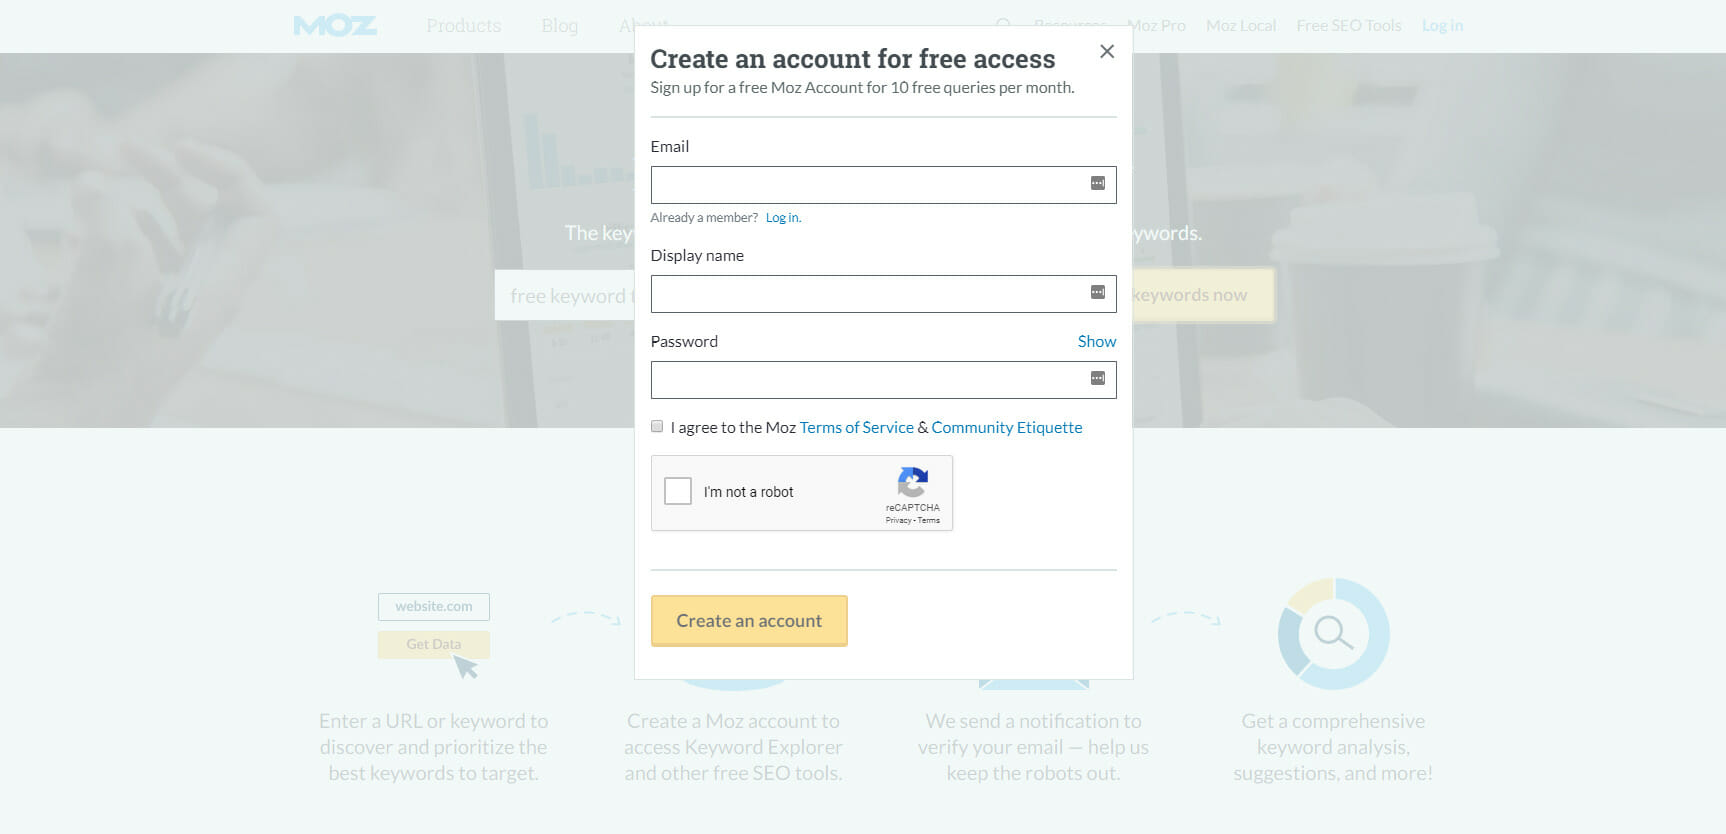 Free Tools for Keyword Search - Moz.com Sign Up